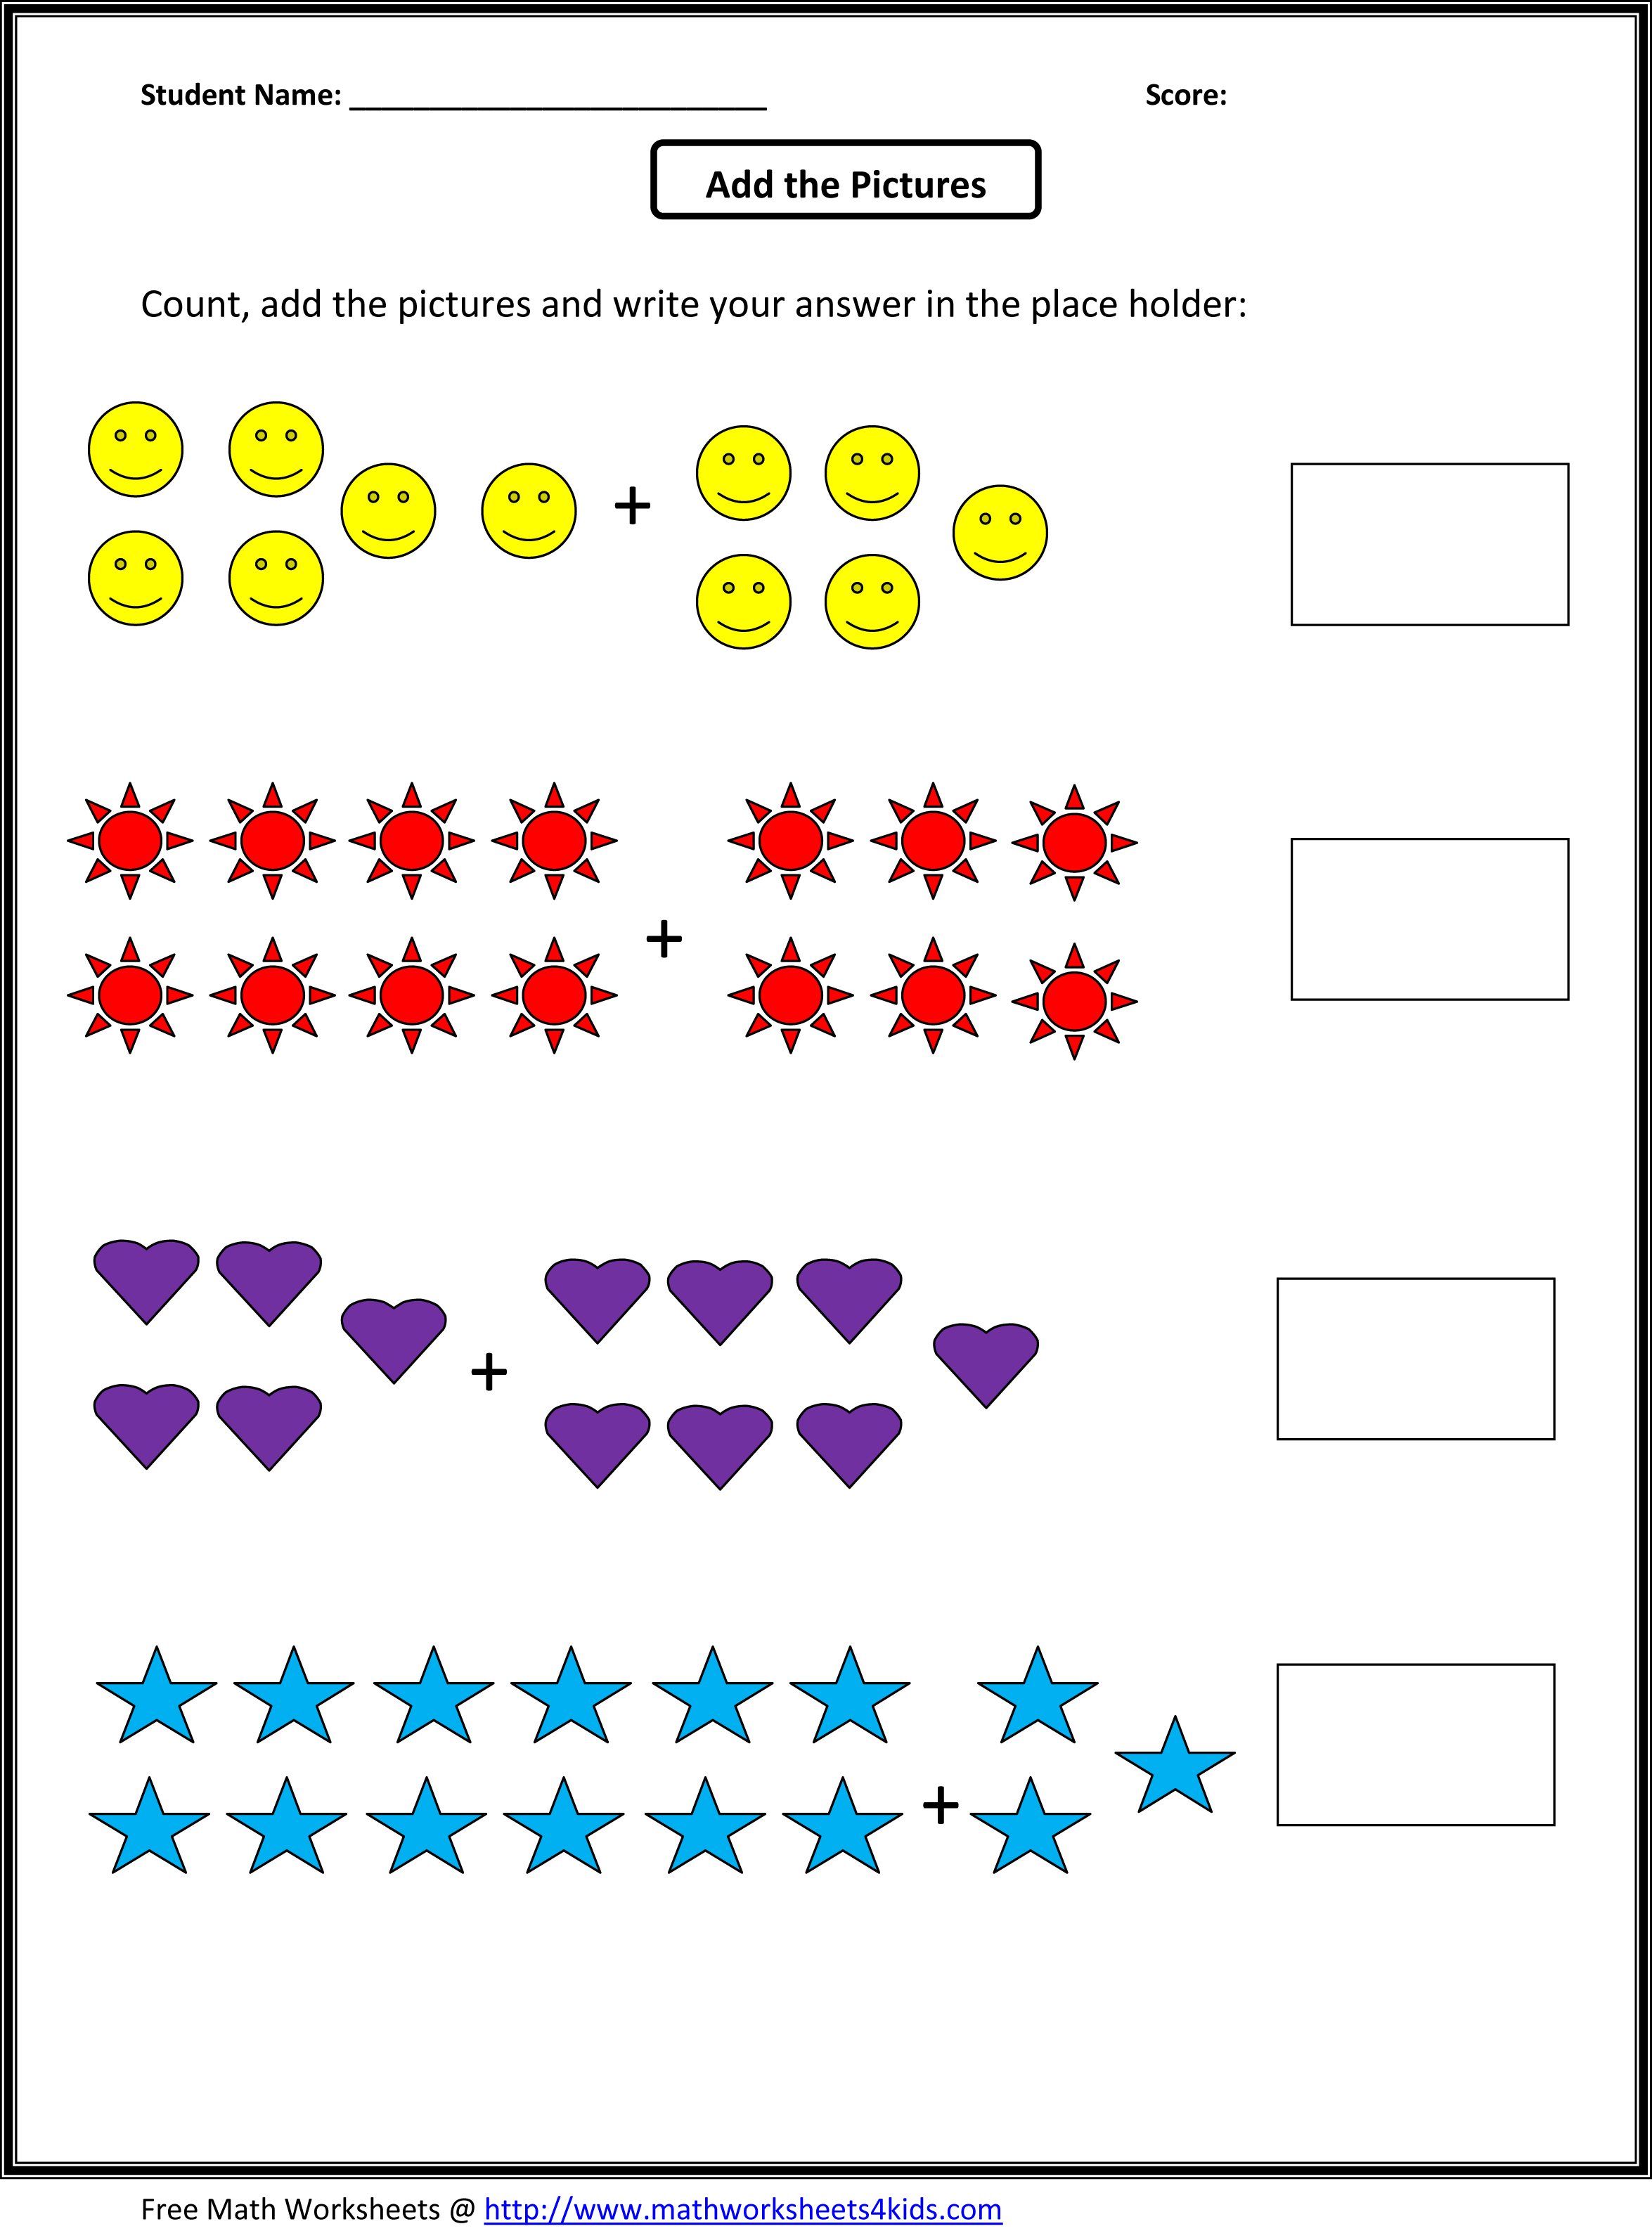 Proatmealus  Surprising Grade  Maths Worksheet  Reocurent With Glamorous Math Worksheets For St Grade Free  Reocurent With Amazing Matrices Worksheet Also Paragraph Worksheets In Addition Rotational Symmetry Worksheet And Number  Worksheet As Well As Bill Of Rights Worksheet High School Additionally Scientific Investigation Worksheet From Reocurentcom With Proatmealus  Glamorous Grade  Maths Worksheet  Reocurent With Amazing Math Worksheets For St Grade Free  Reocurent And Surprising Matrices Worksheet Also Paragraph Worksheets In Addition Rotational Symmetry Worksheet From Reocurentcom